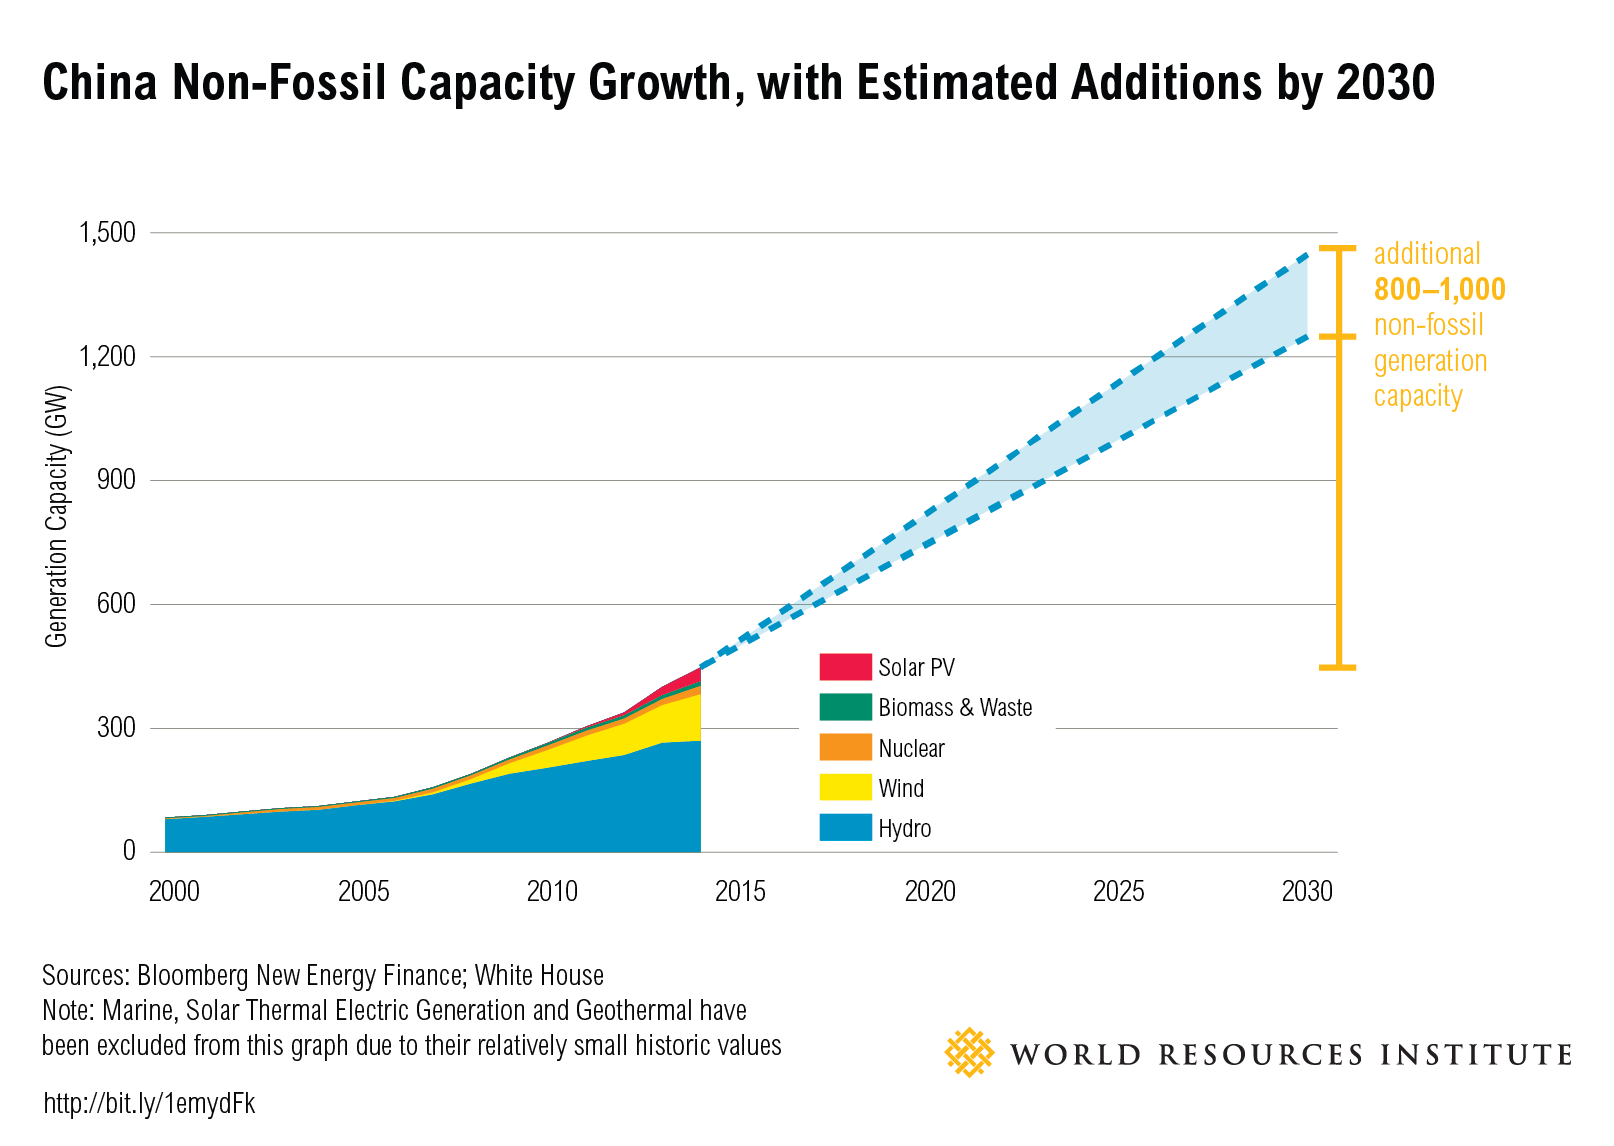 <p>To achieve its non-fossil energy target, China will need to add significant capacity.</p>